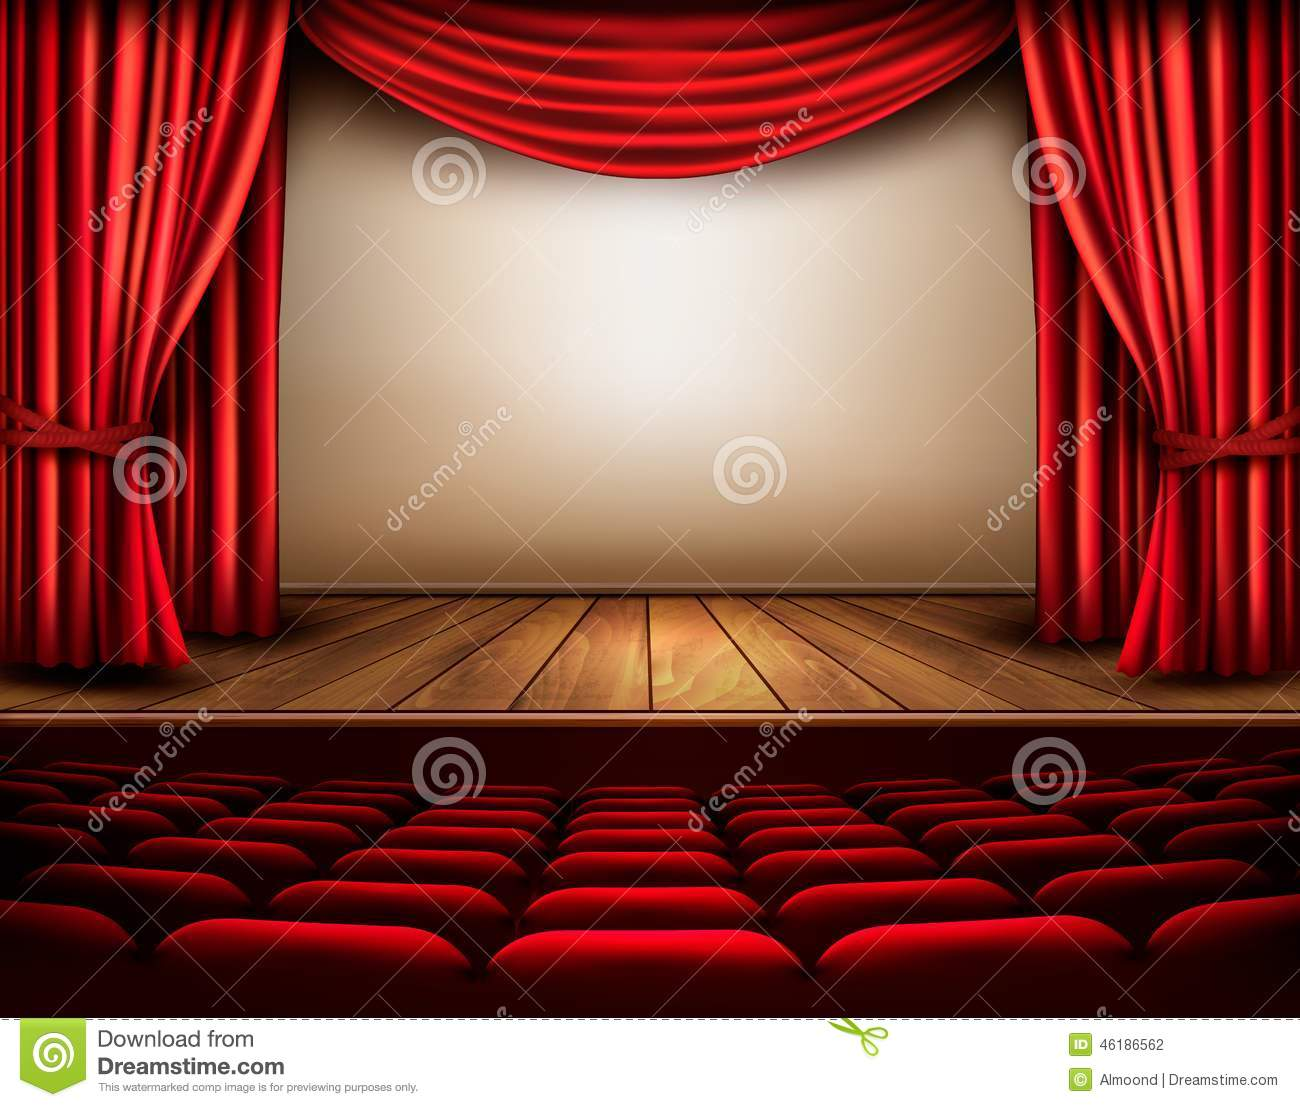 Cinema Or Theater Scene With A Curtain. Stock Vector